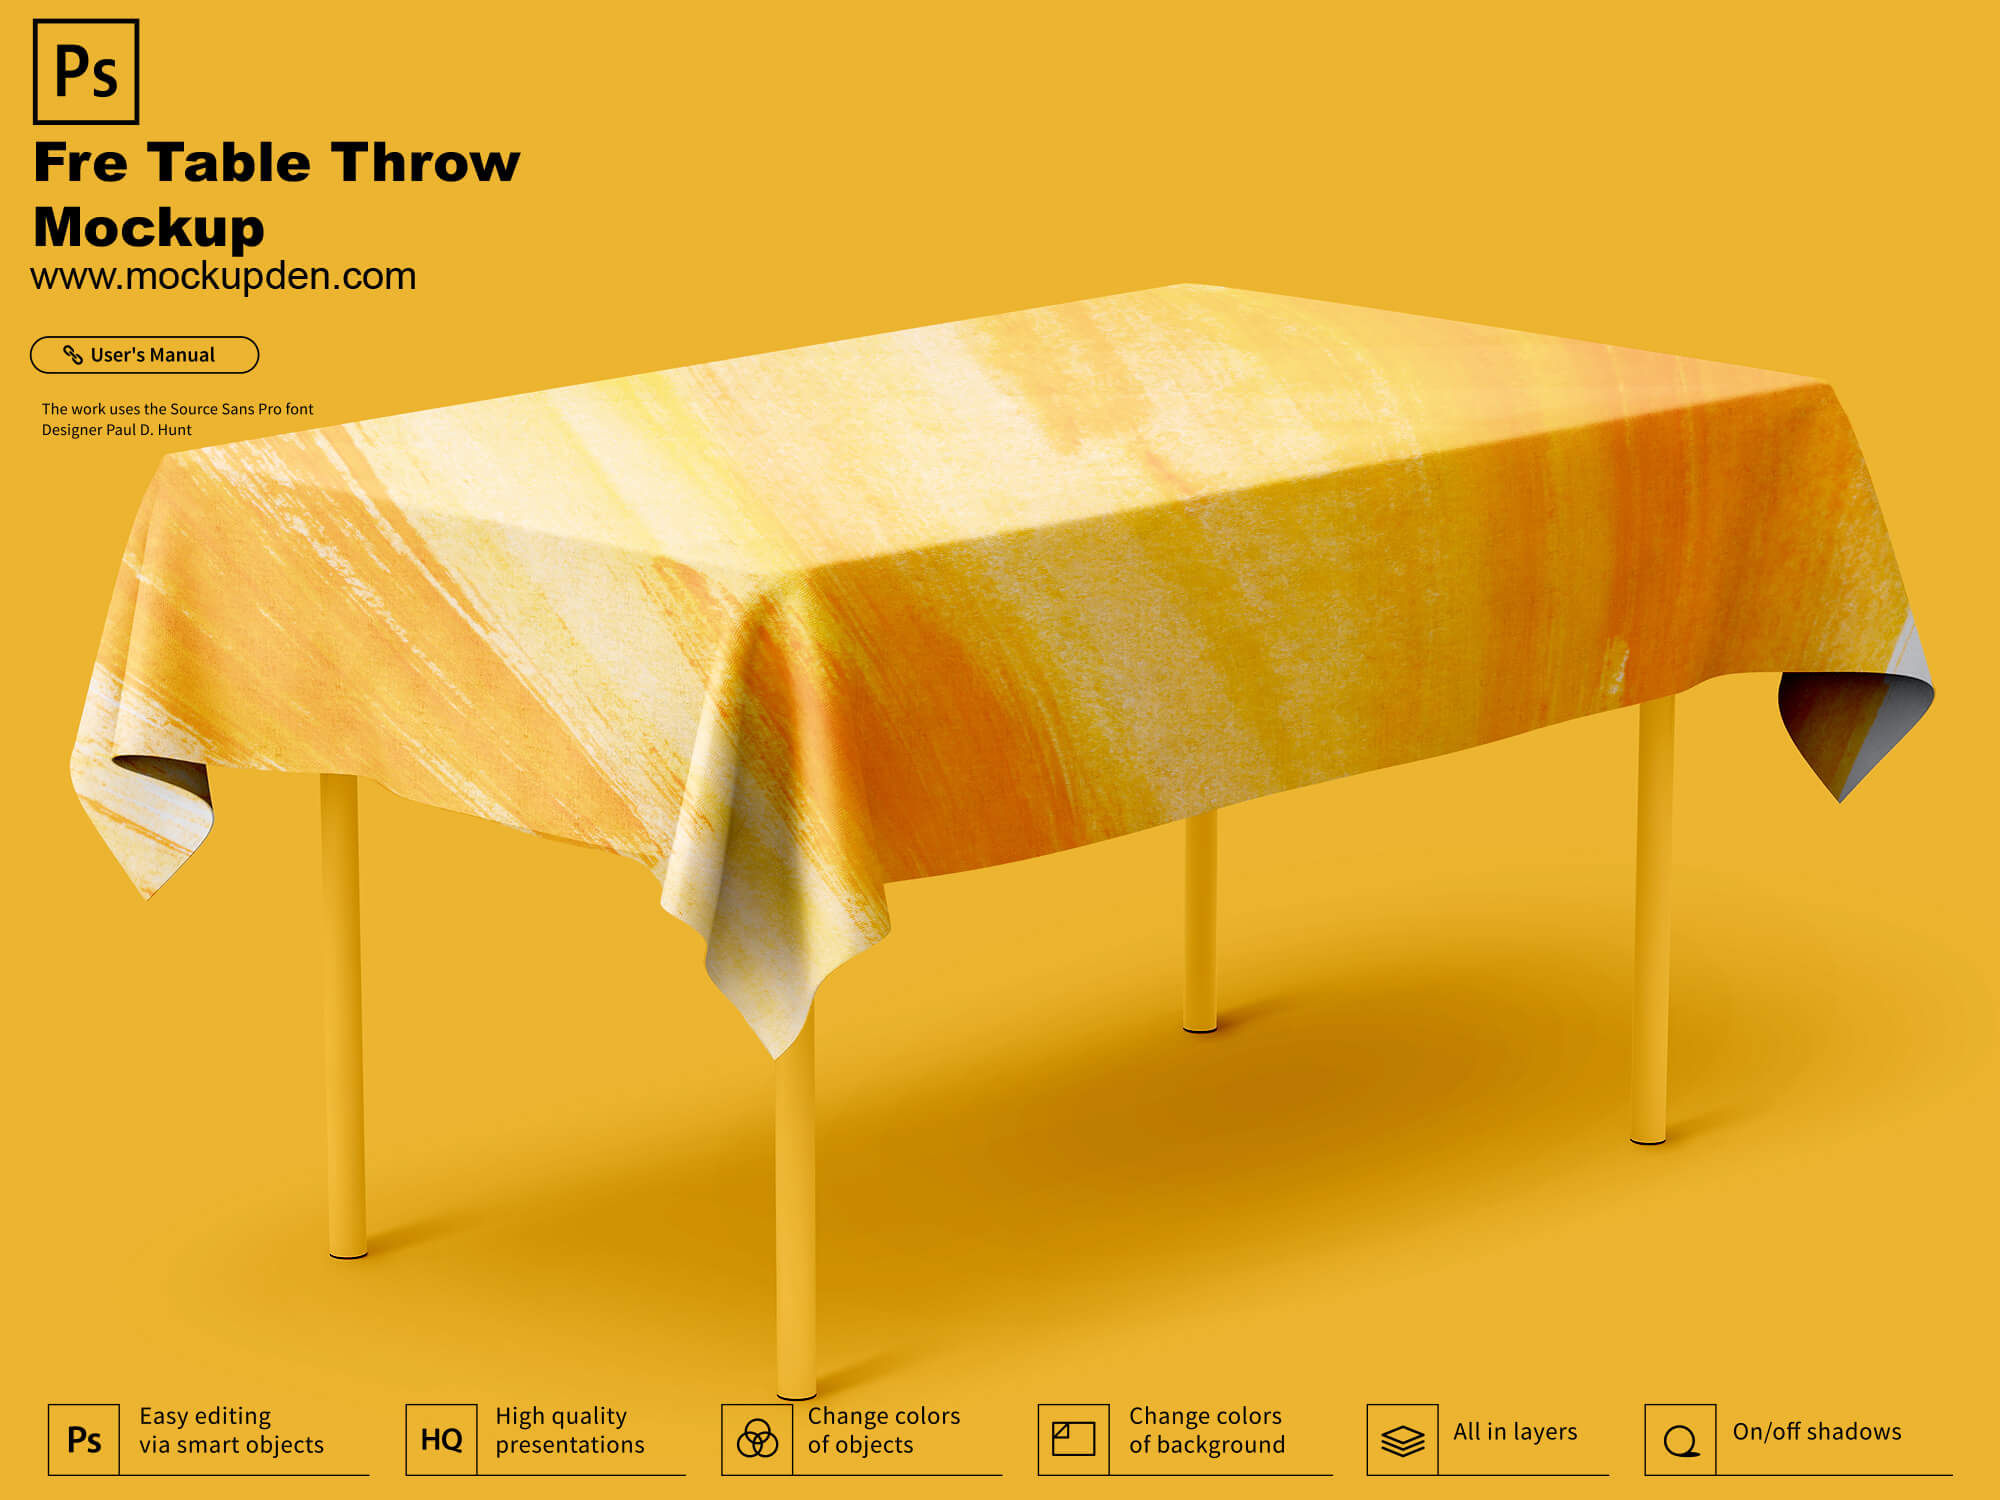 Free Table Throw Mockup PSD Template